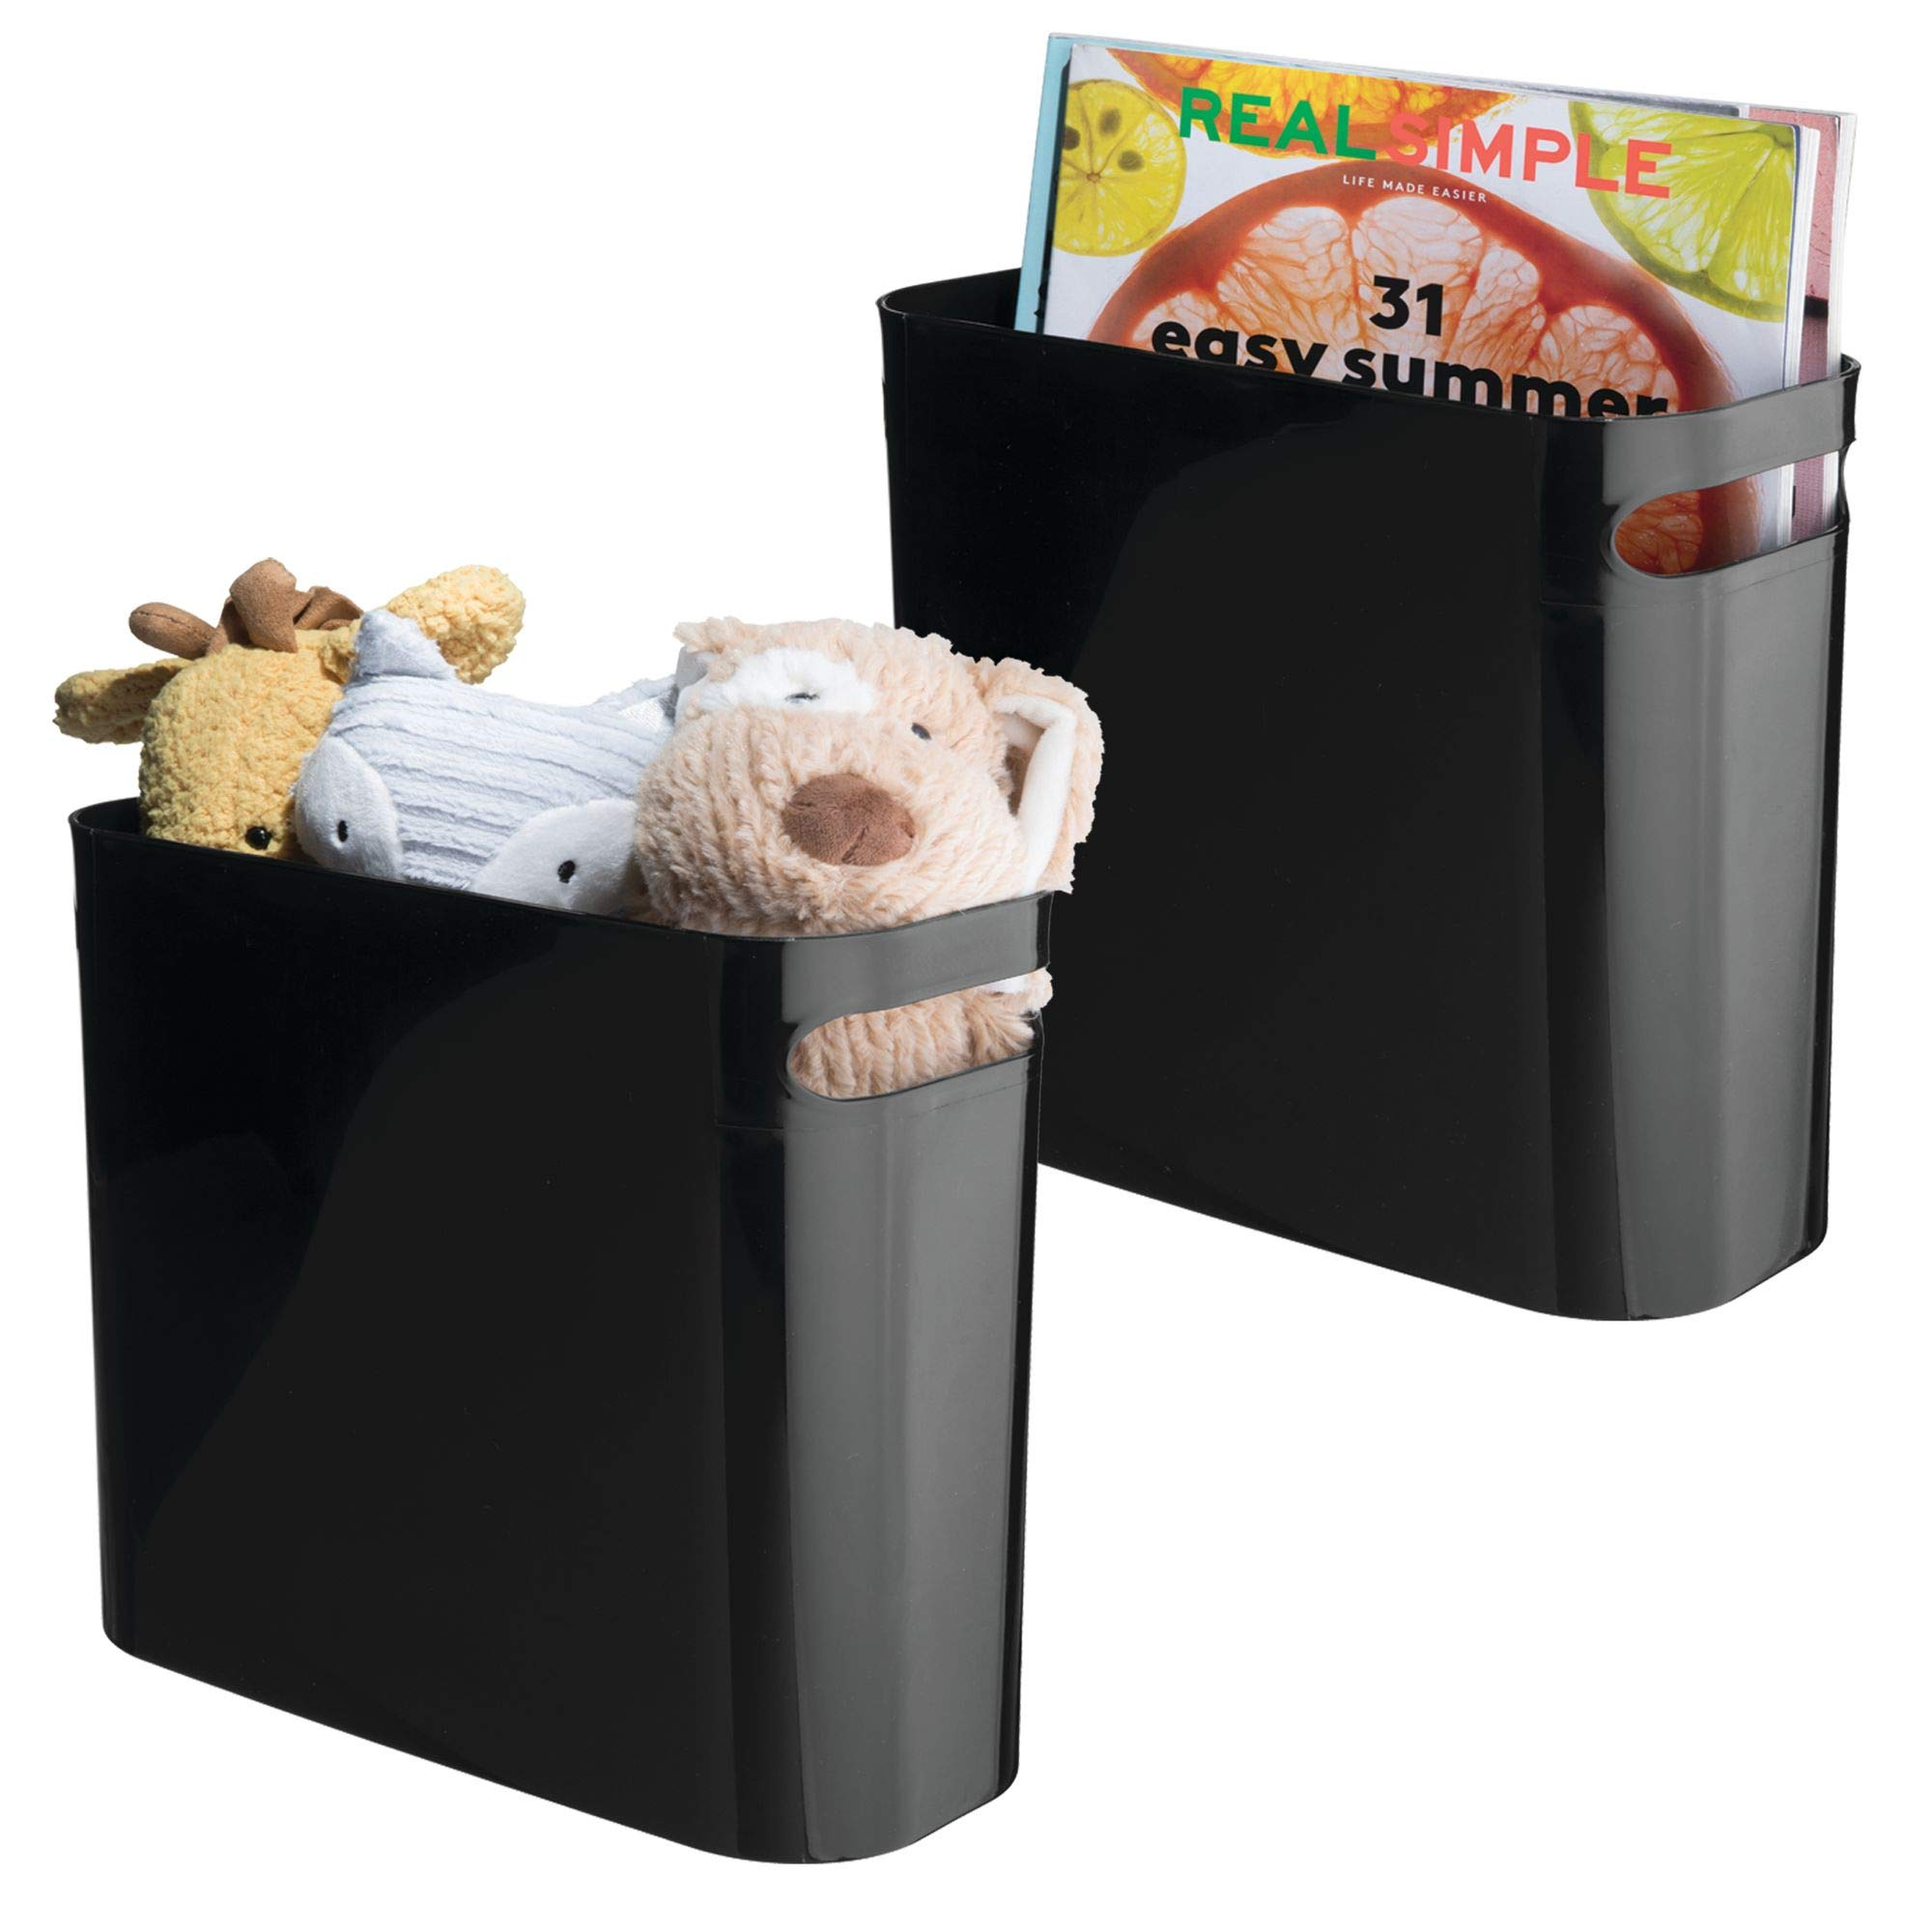 mDesign Plastic Storage Organizer, Holder Bin Box with Handles - for Cube Furniture Shelving Organization for Closet, Kid's Bedroom, Bathroom, Home Office - 10.75'' x 5'' x 10'' high, 2 Pack - Black